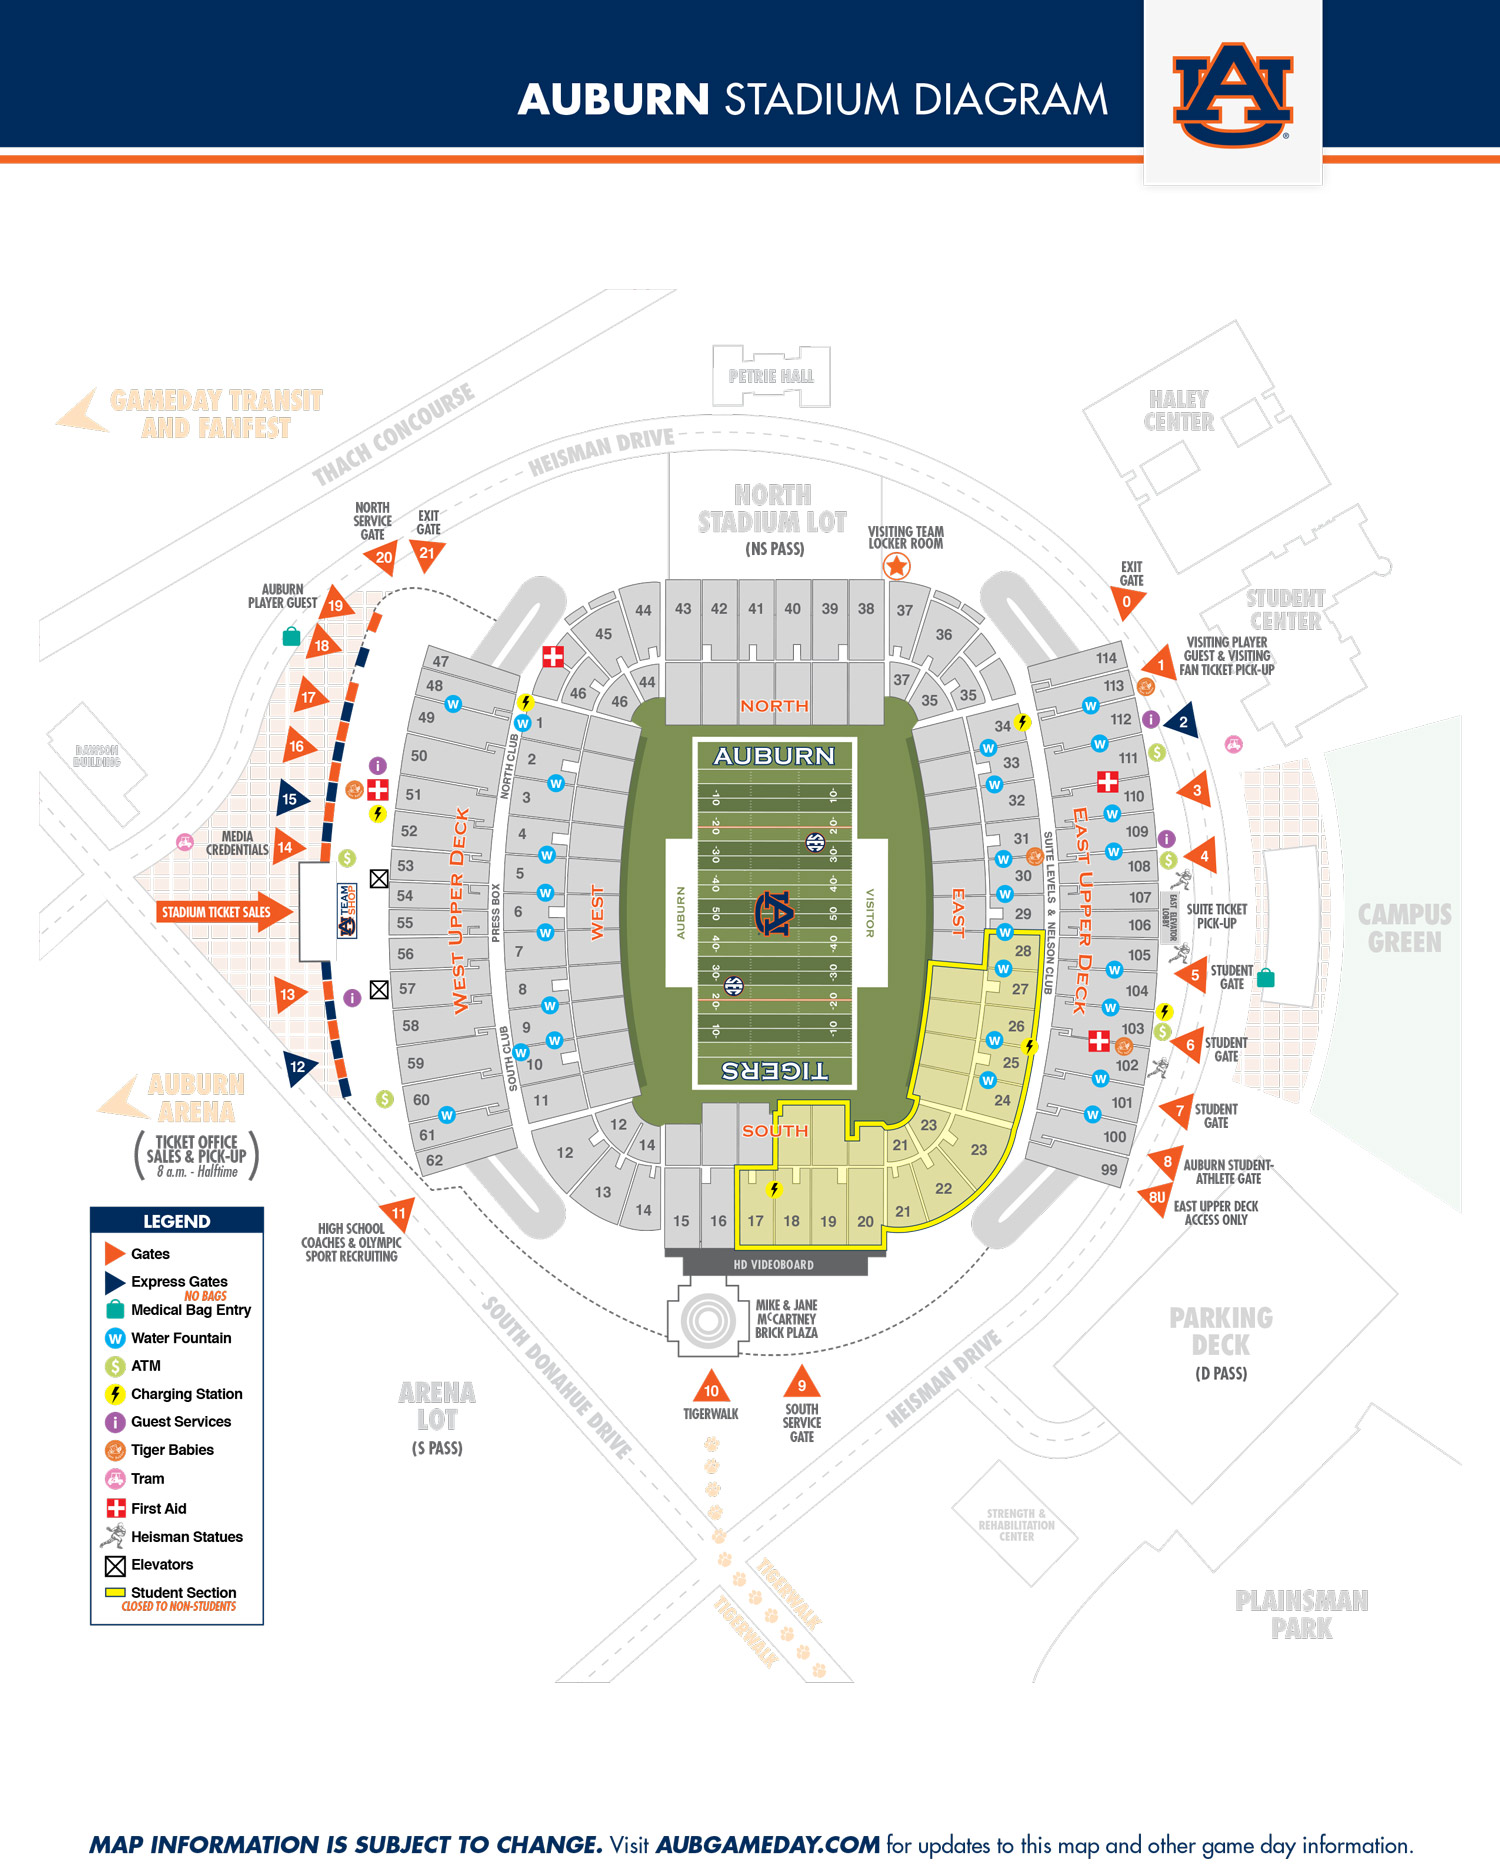 Get Tickets To Auburn Football Seating Chart